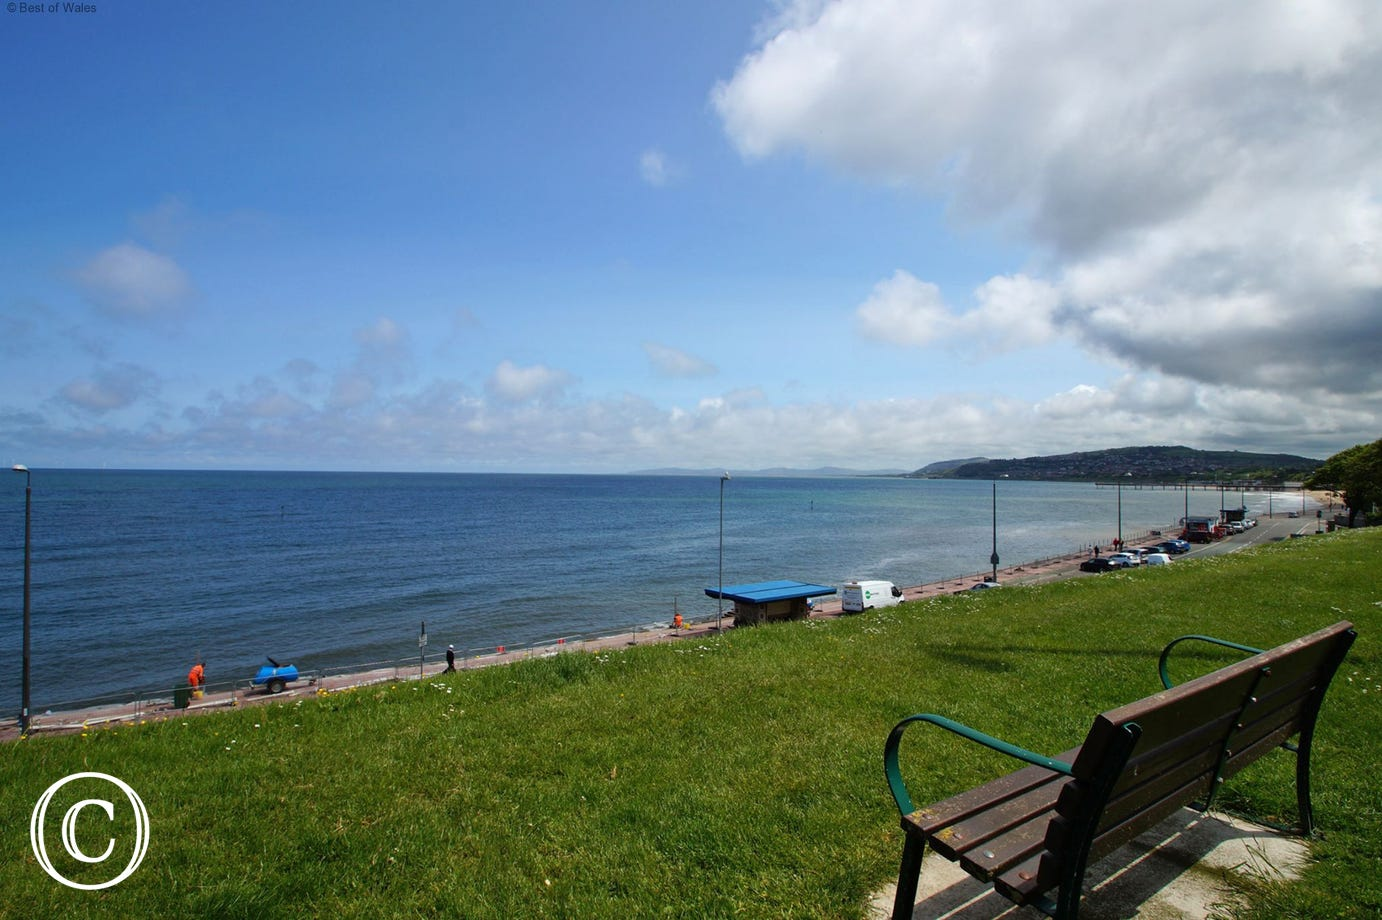 Just a short walk to the seafront, beach, coastal walk and restaurants